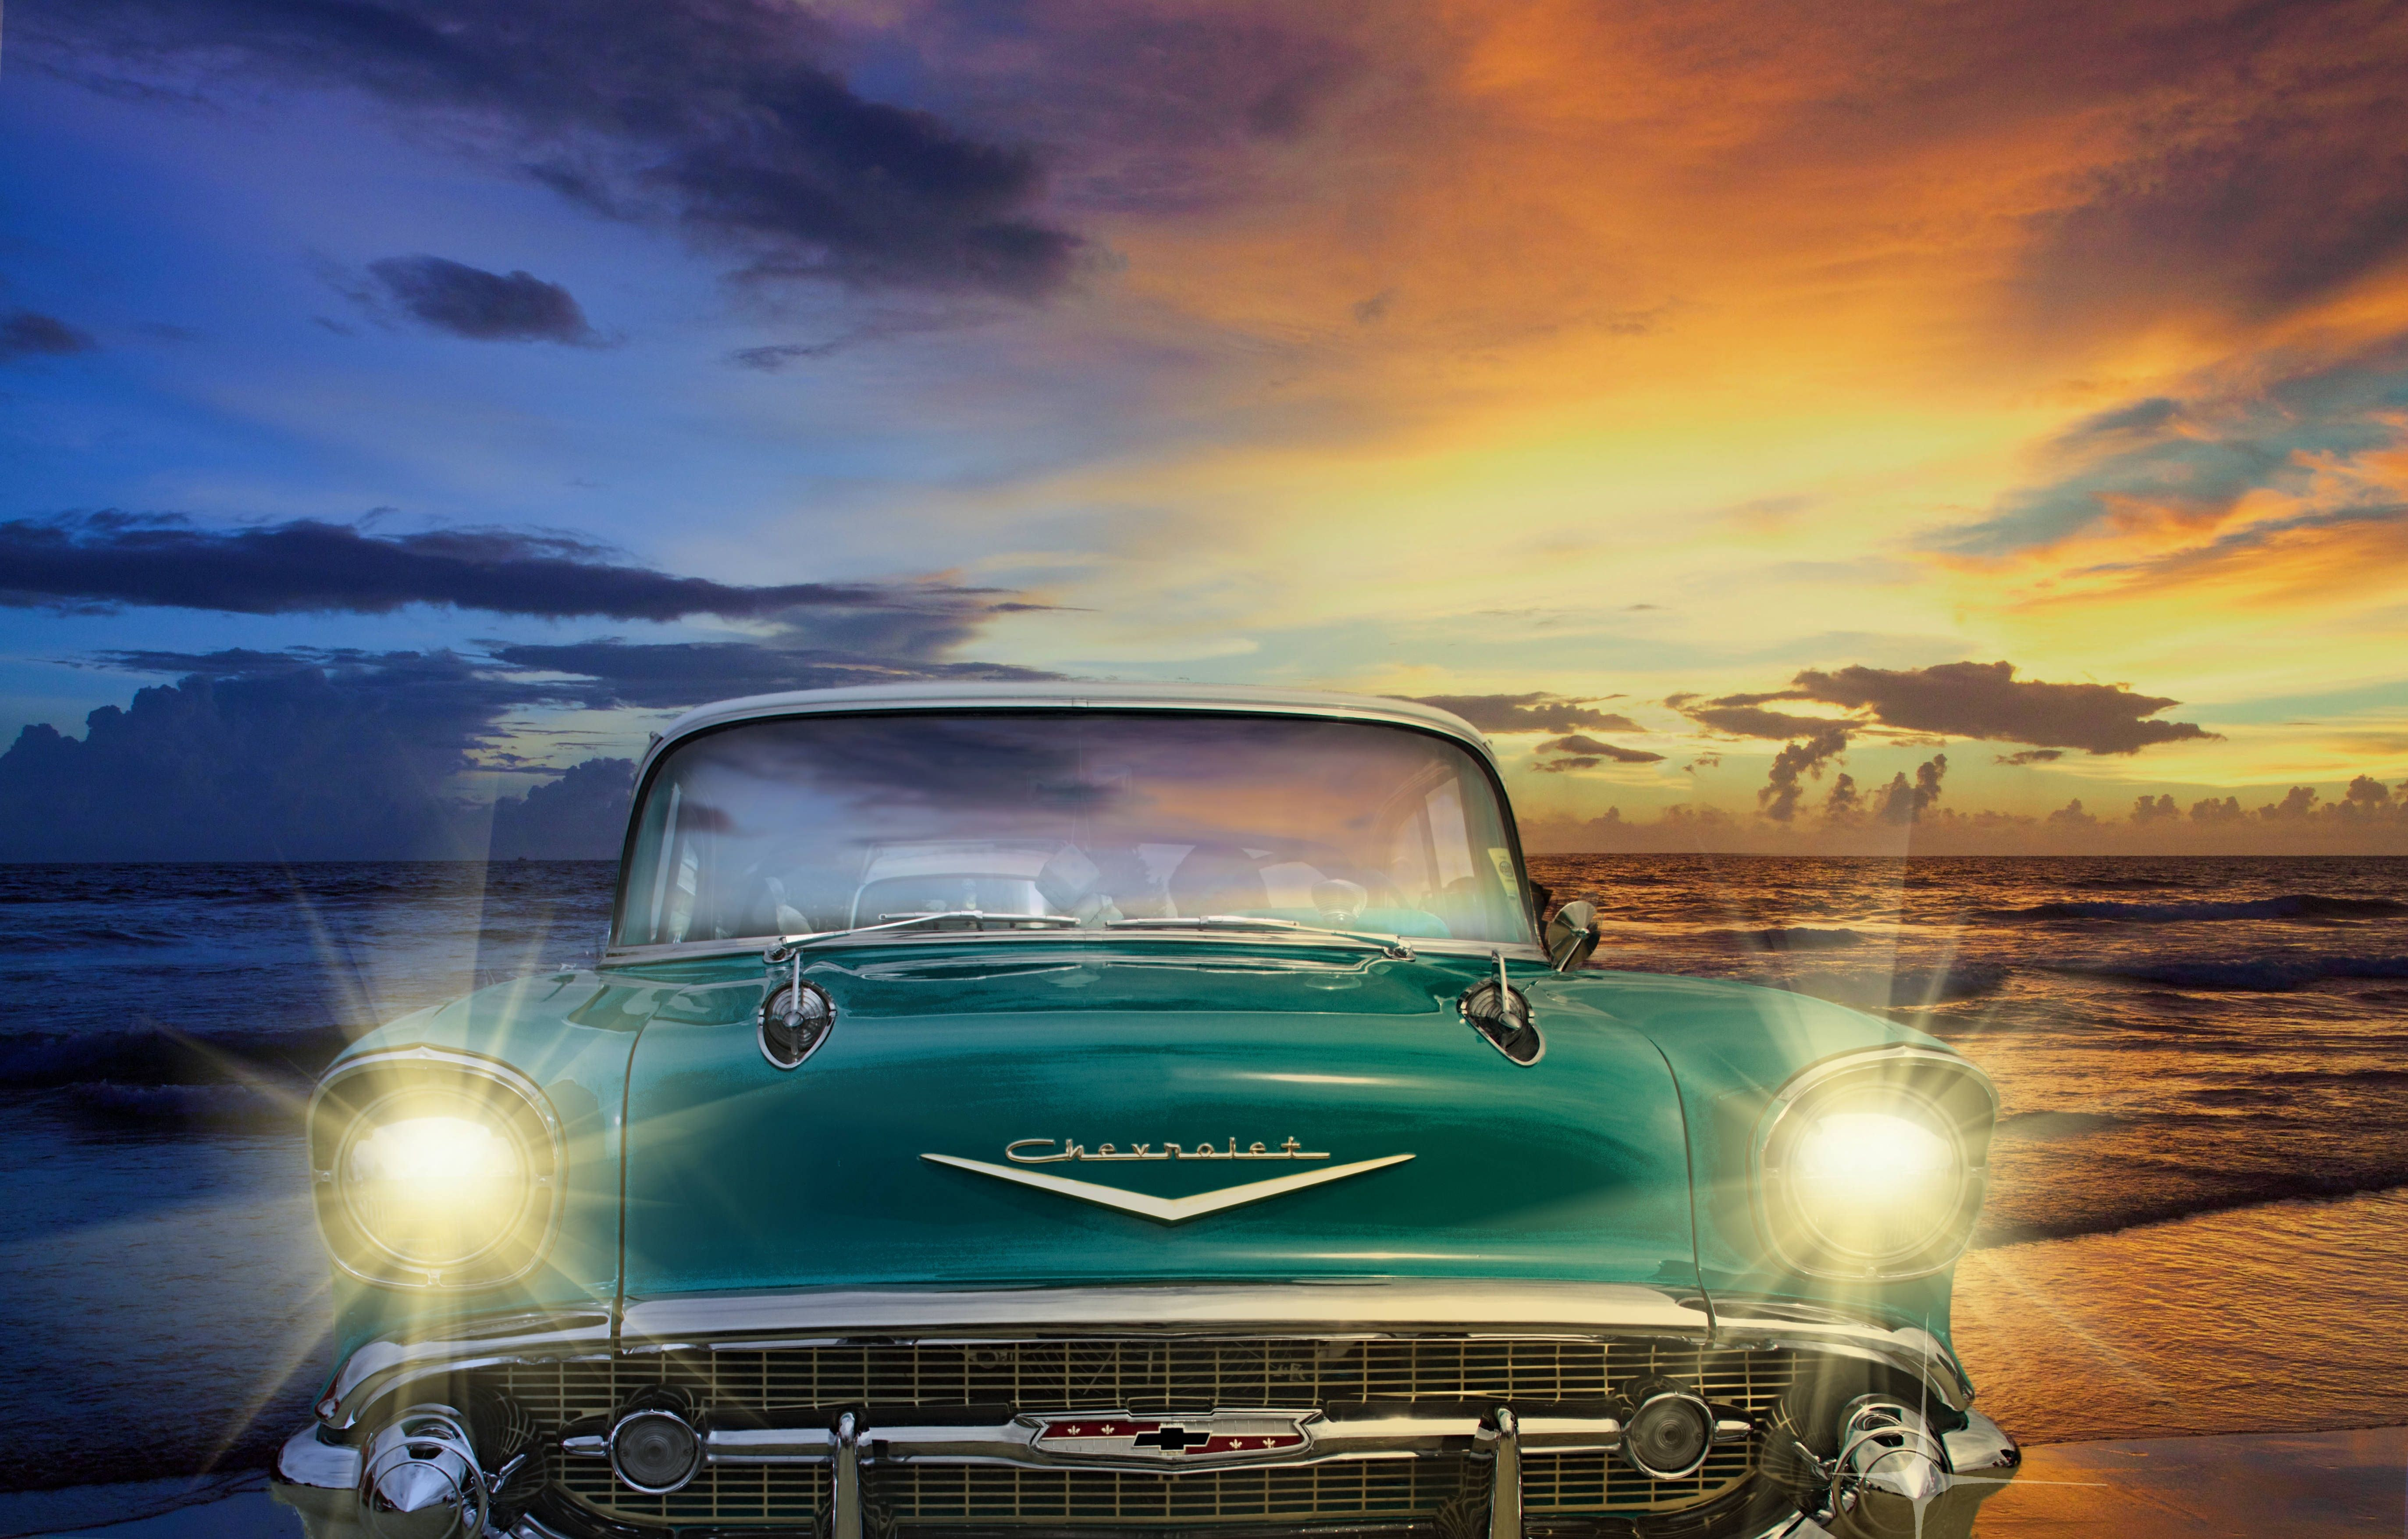 Old Classic Chevrolet Wallpapers - Wallpaper Cave